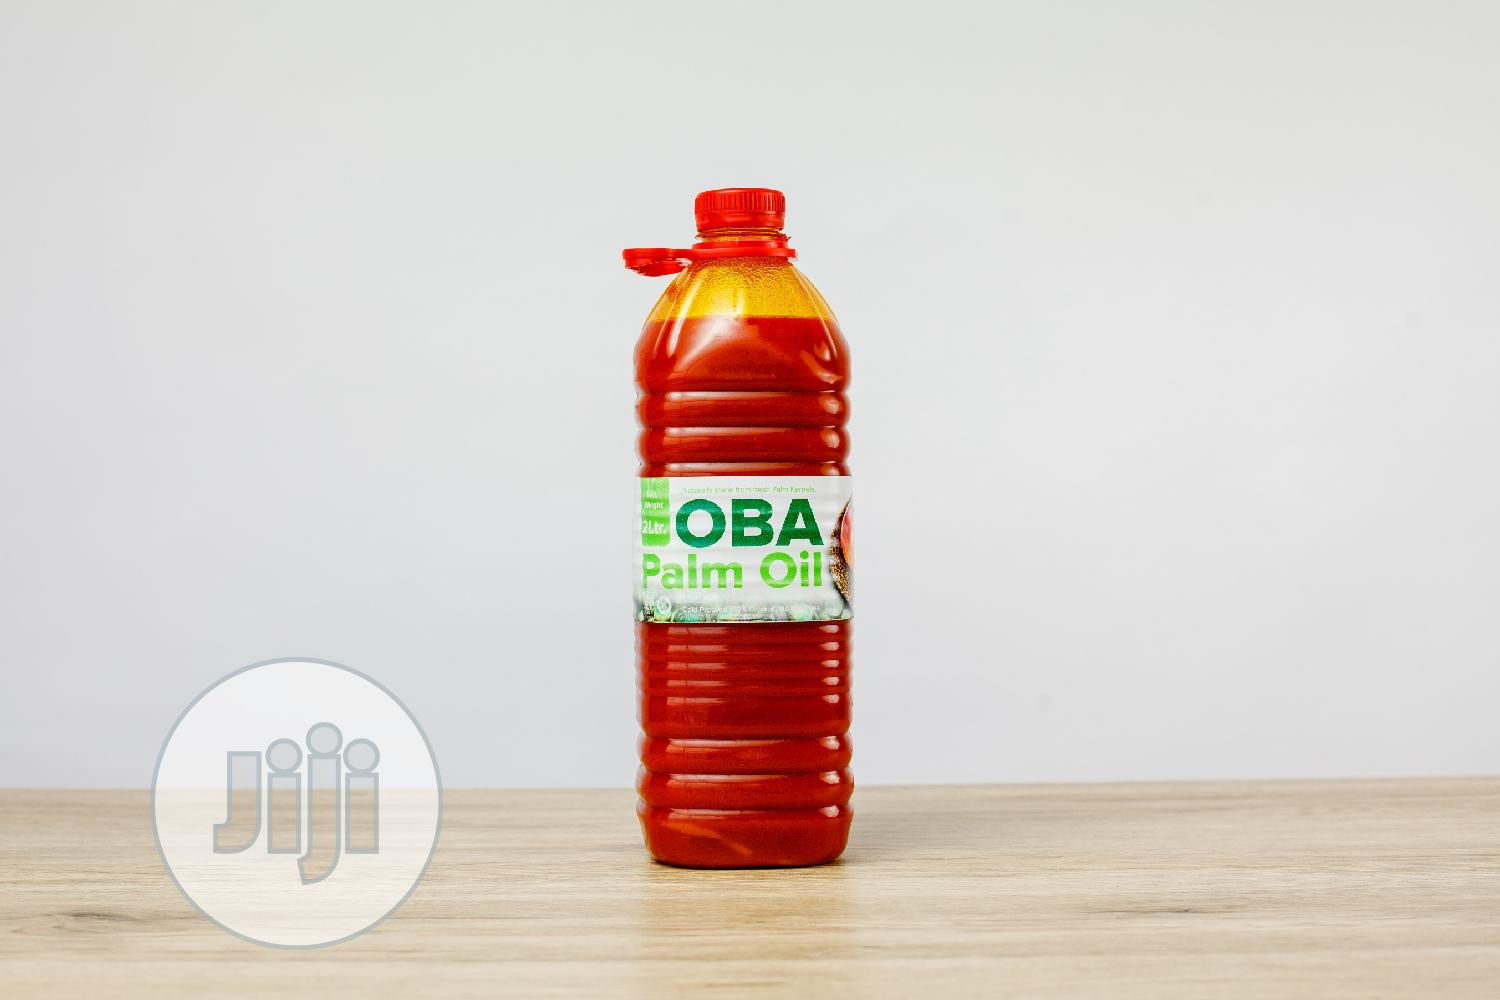 2.5 Litres Of Palm Oil From Oba Farms